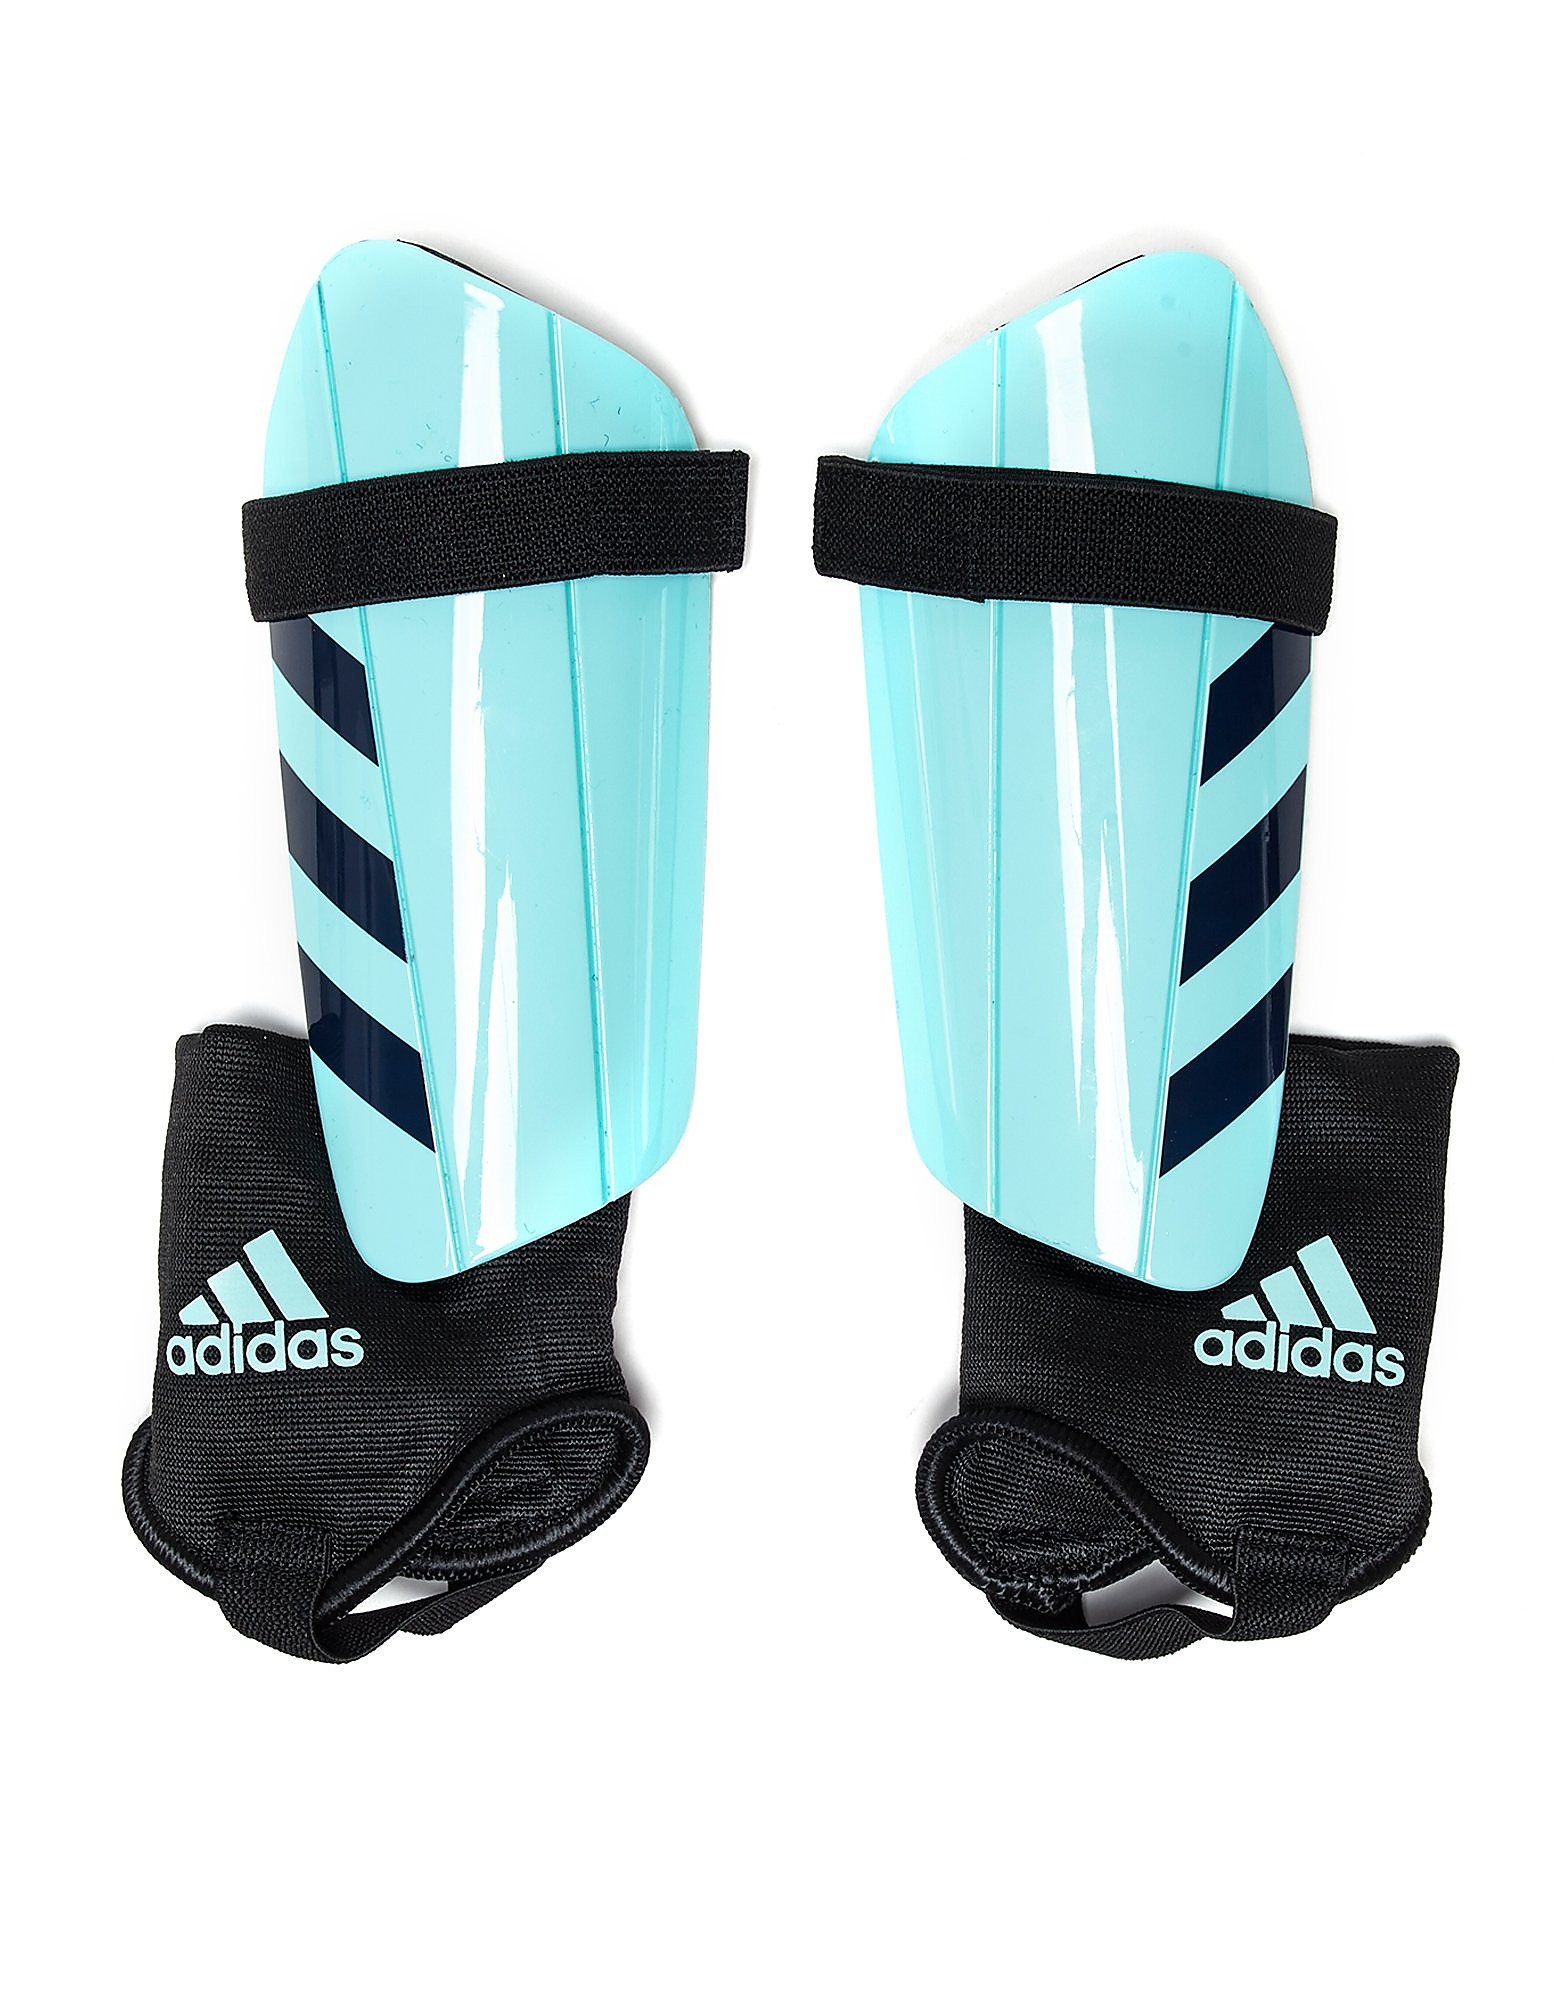 adidas Ocean Storm Ghost Club Shin Guards